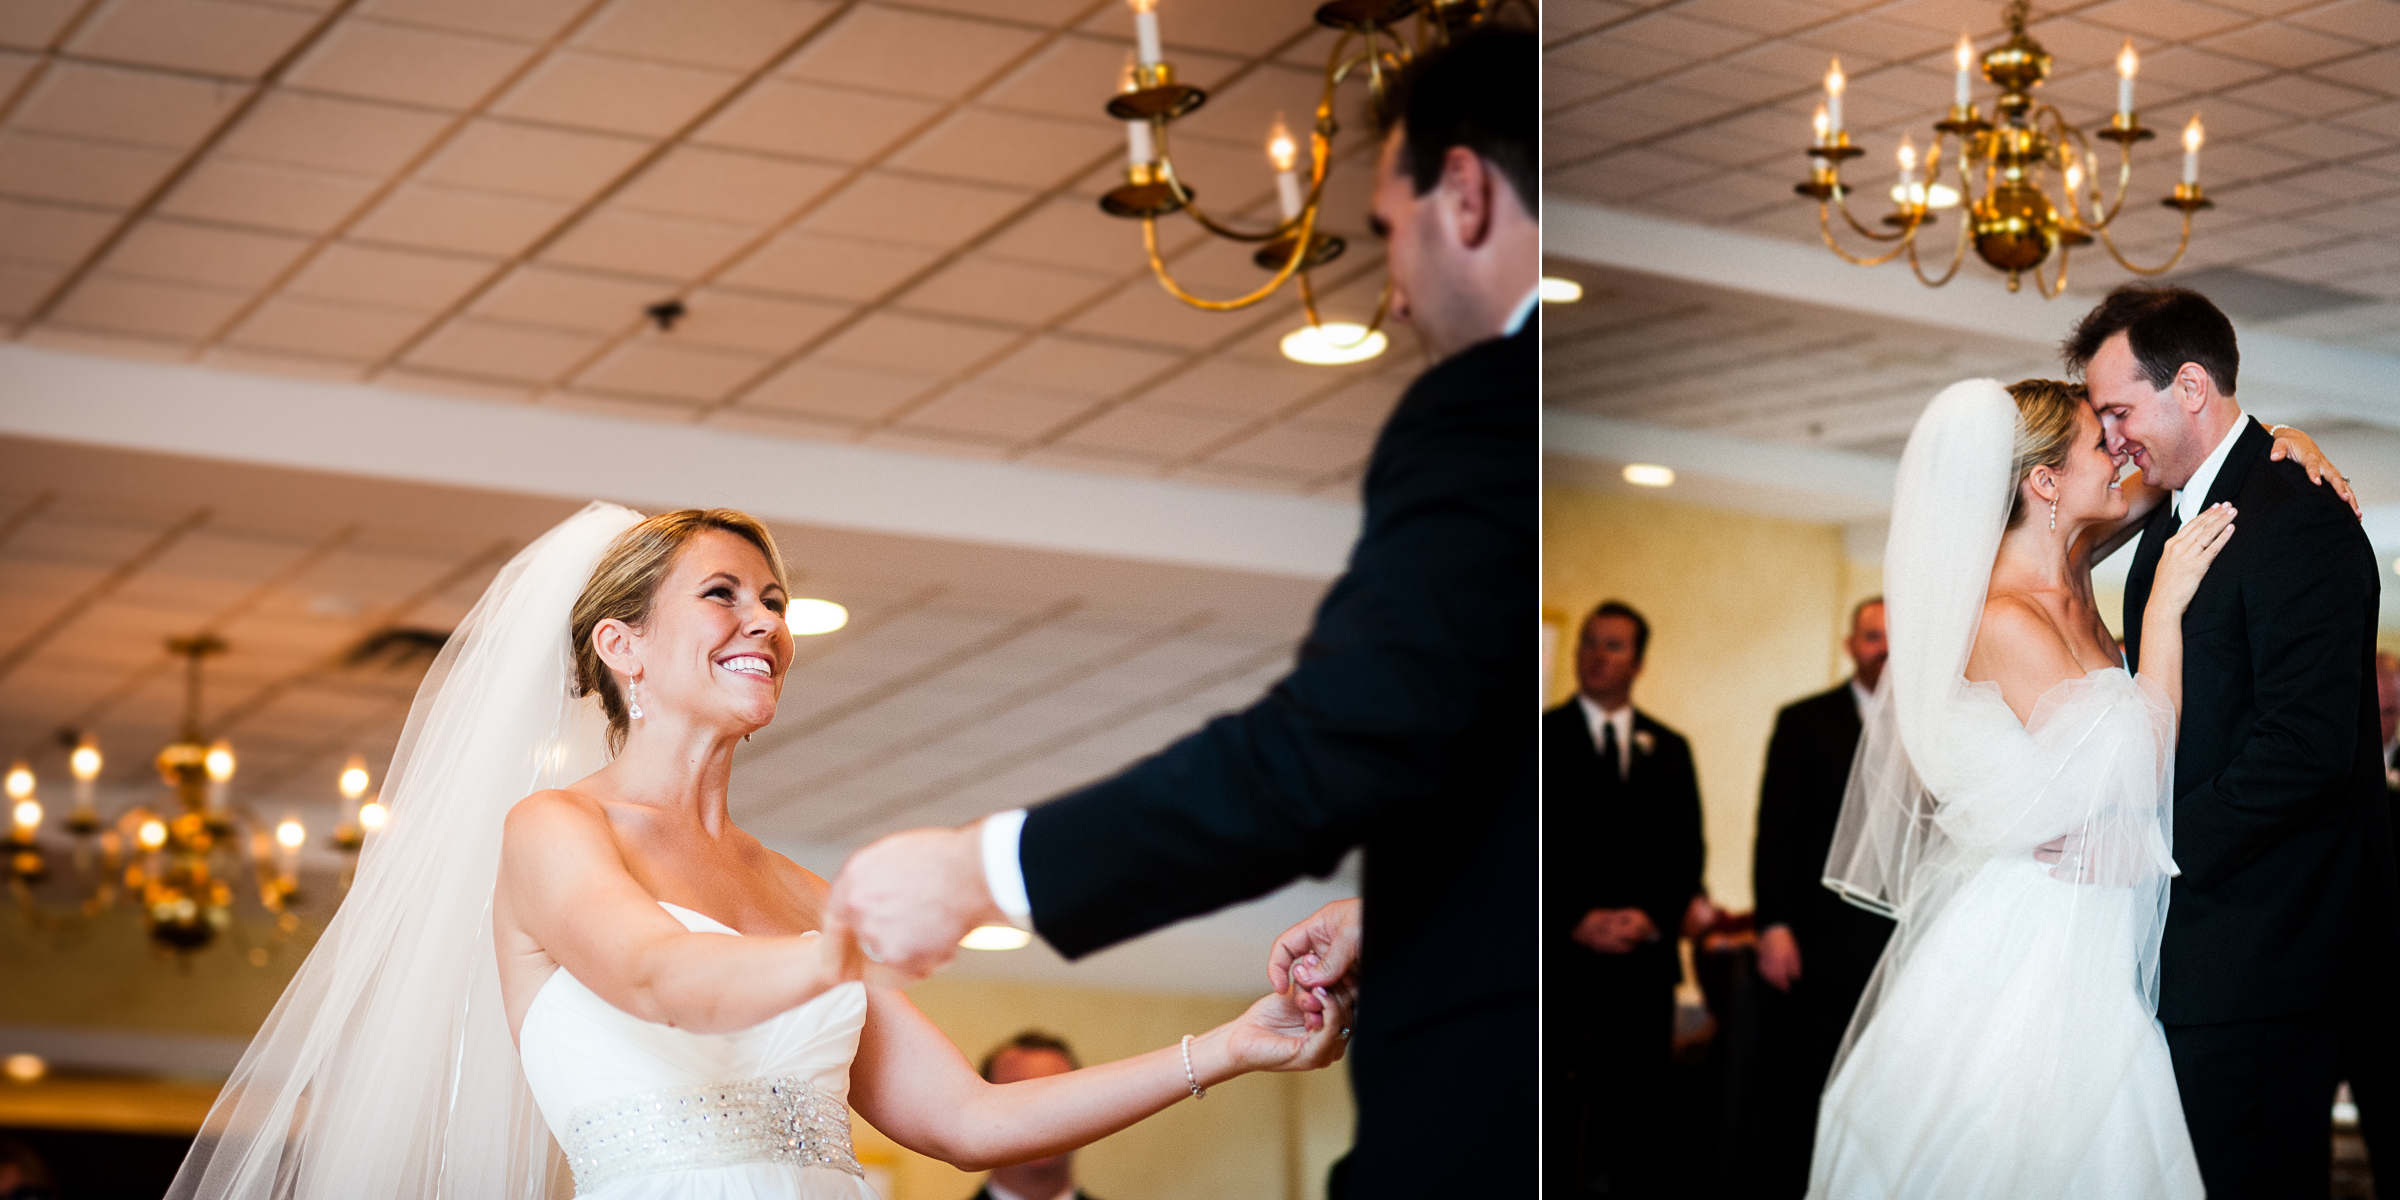 the bride and groom have a blast during their first dance as husband and wife